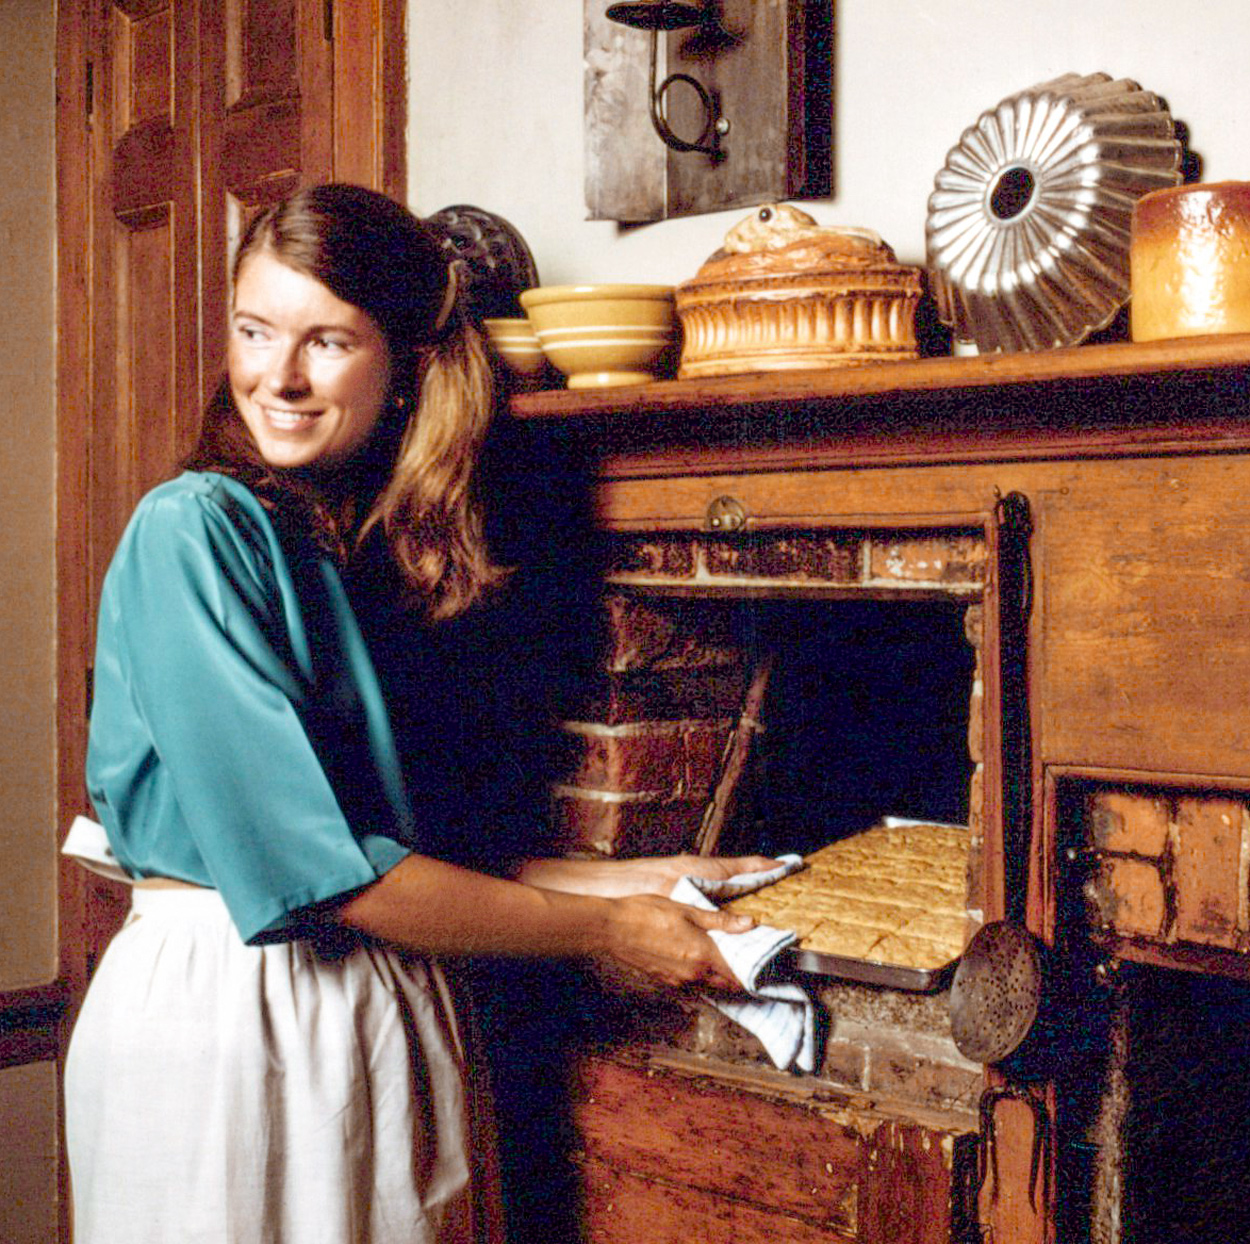 Martha at baking in beehive oven